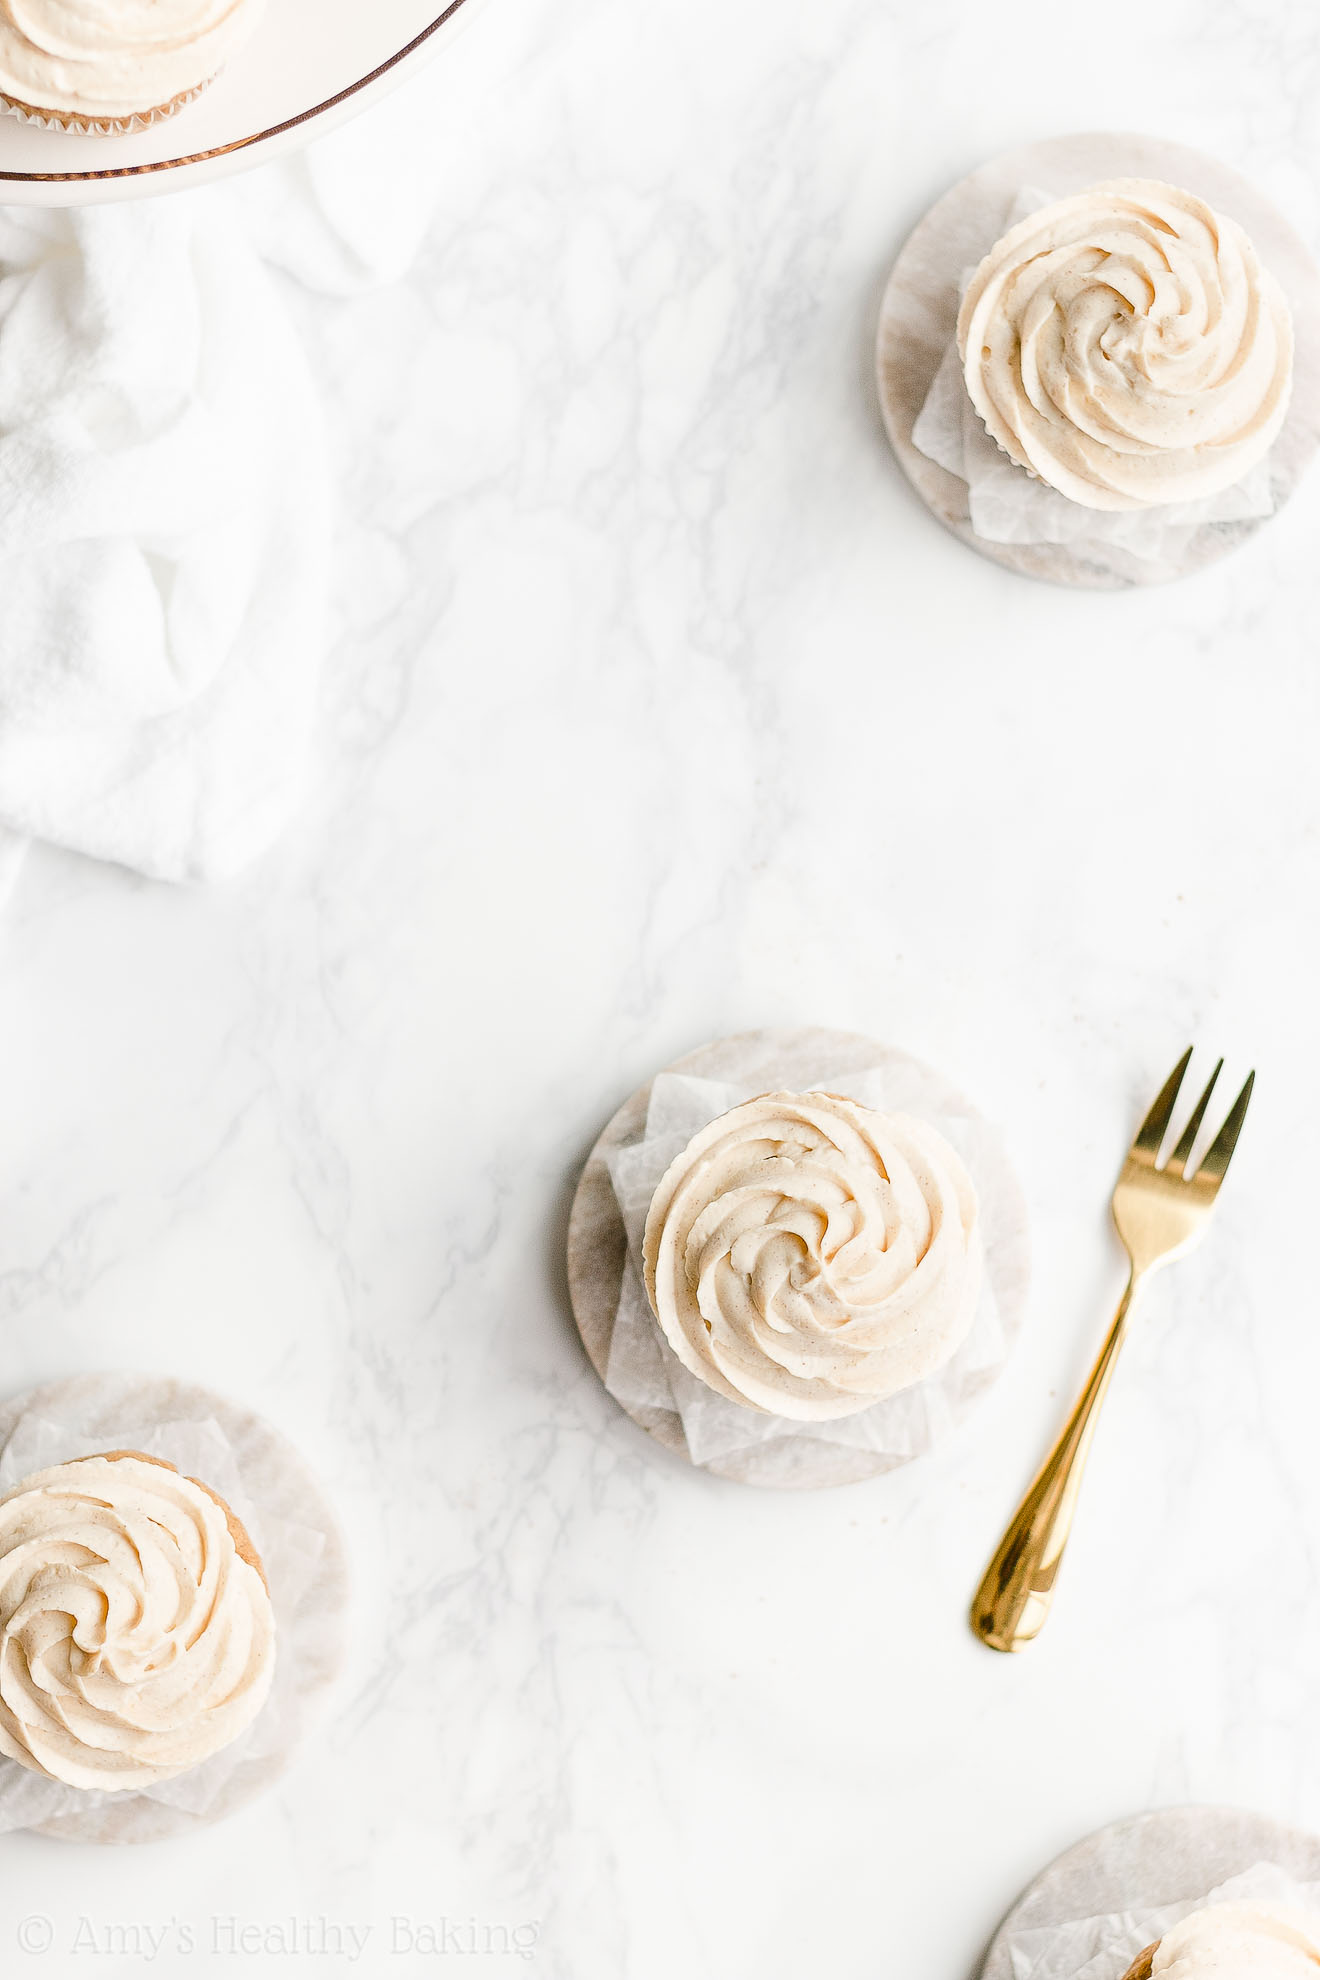 Healthy Eggnog Cupcakes with High Protein Cinnamon Greek Yogurt Frosting